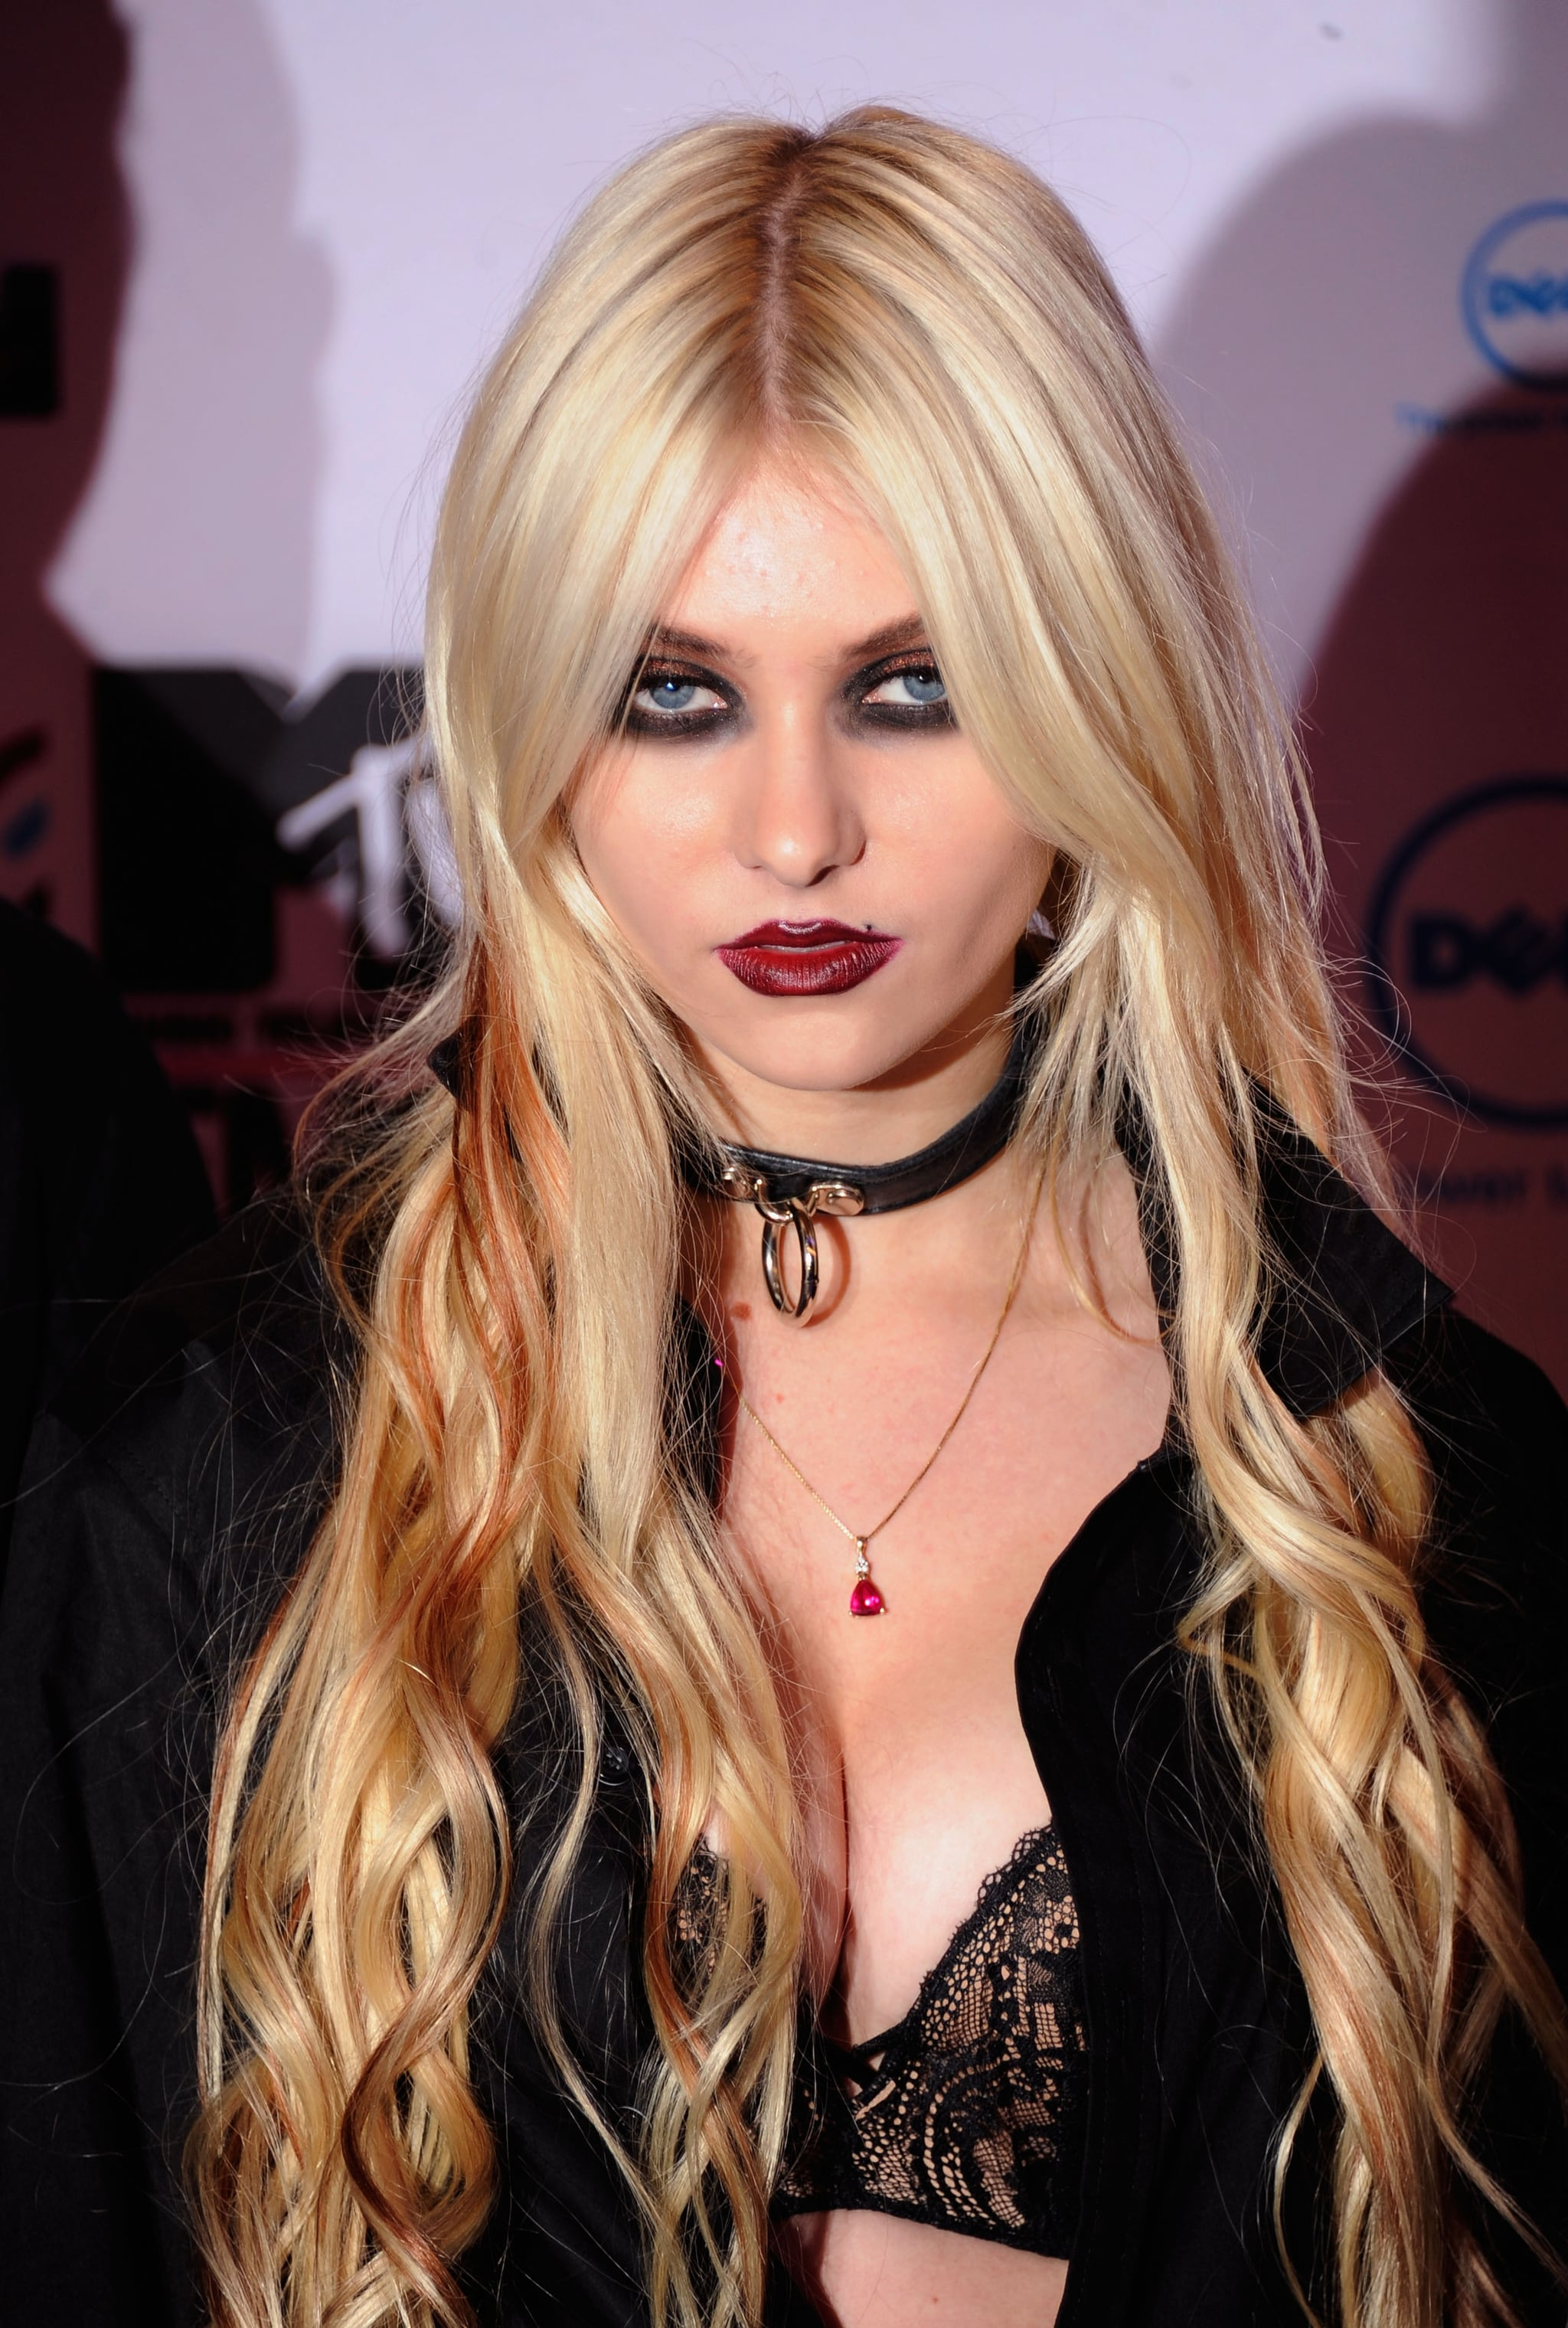 Pictures Of Women Red Carpet At Mtv Emas 2010 Including